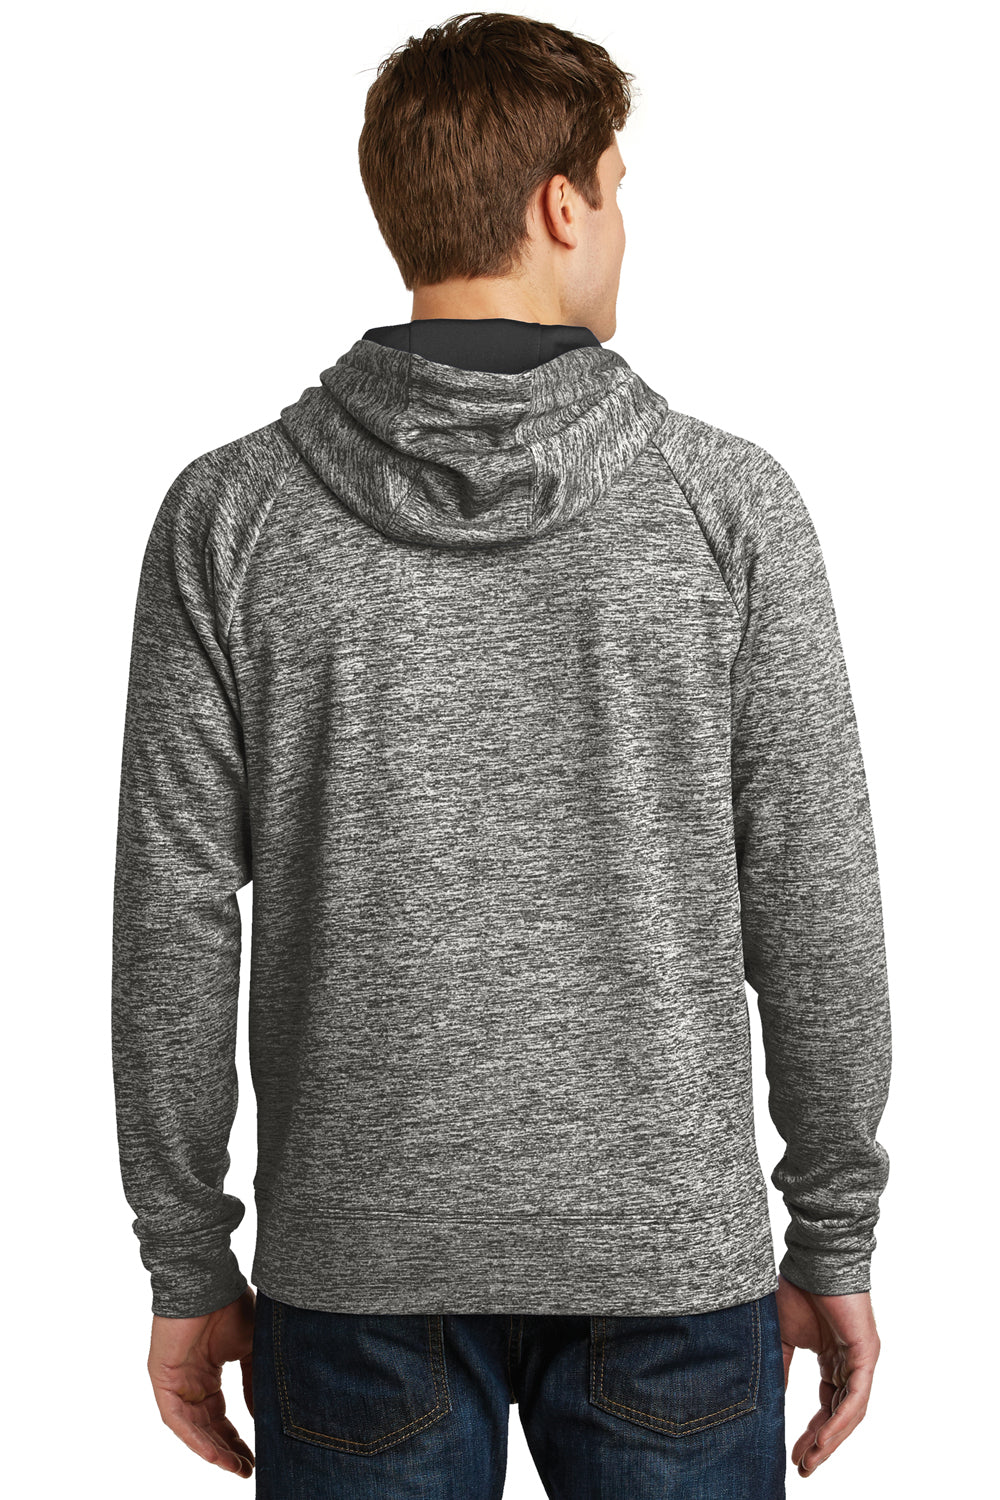 Sport-Tek ST225 Mens Electric Heather Moisture Wicking Fleece Hooded Sweatshirt Hoodie Black Back